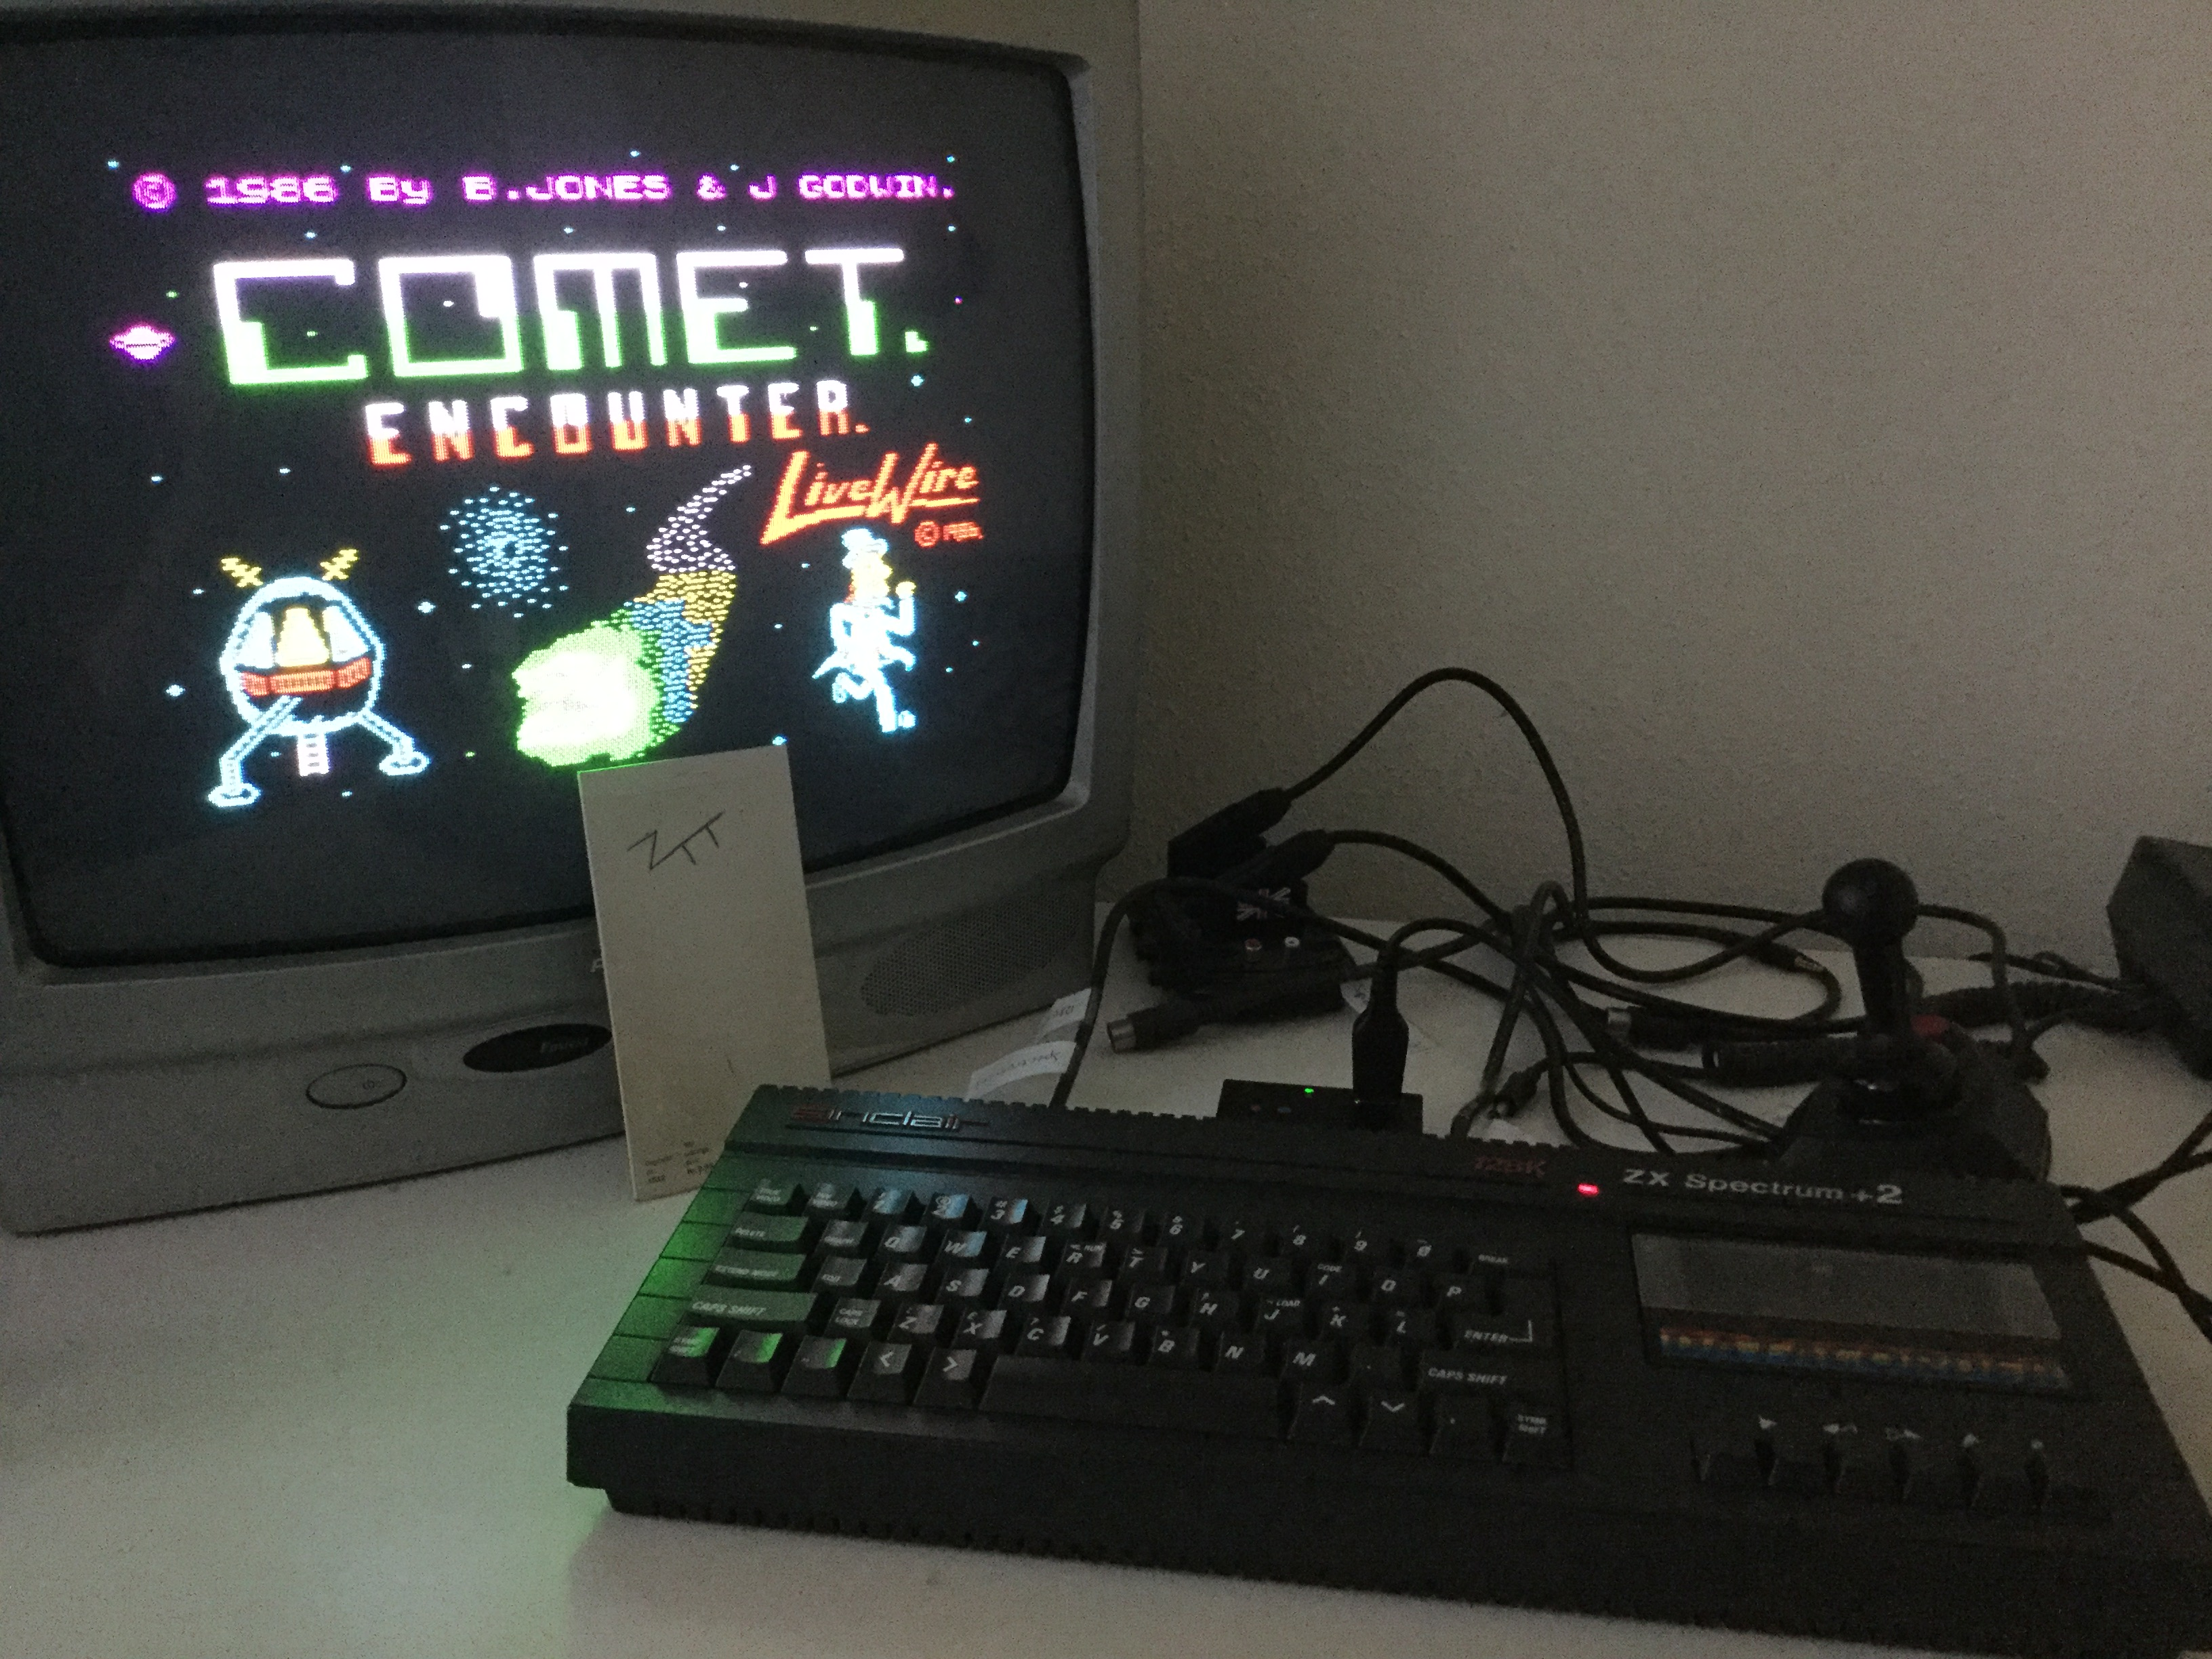 Frankie: Comet Encounter [Skill Level 2] (ZX Spectrum) 85 points on 2019-05-05 12:29:37